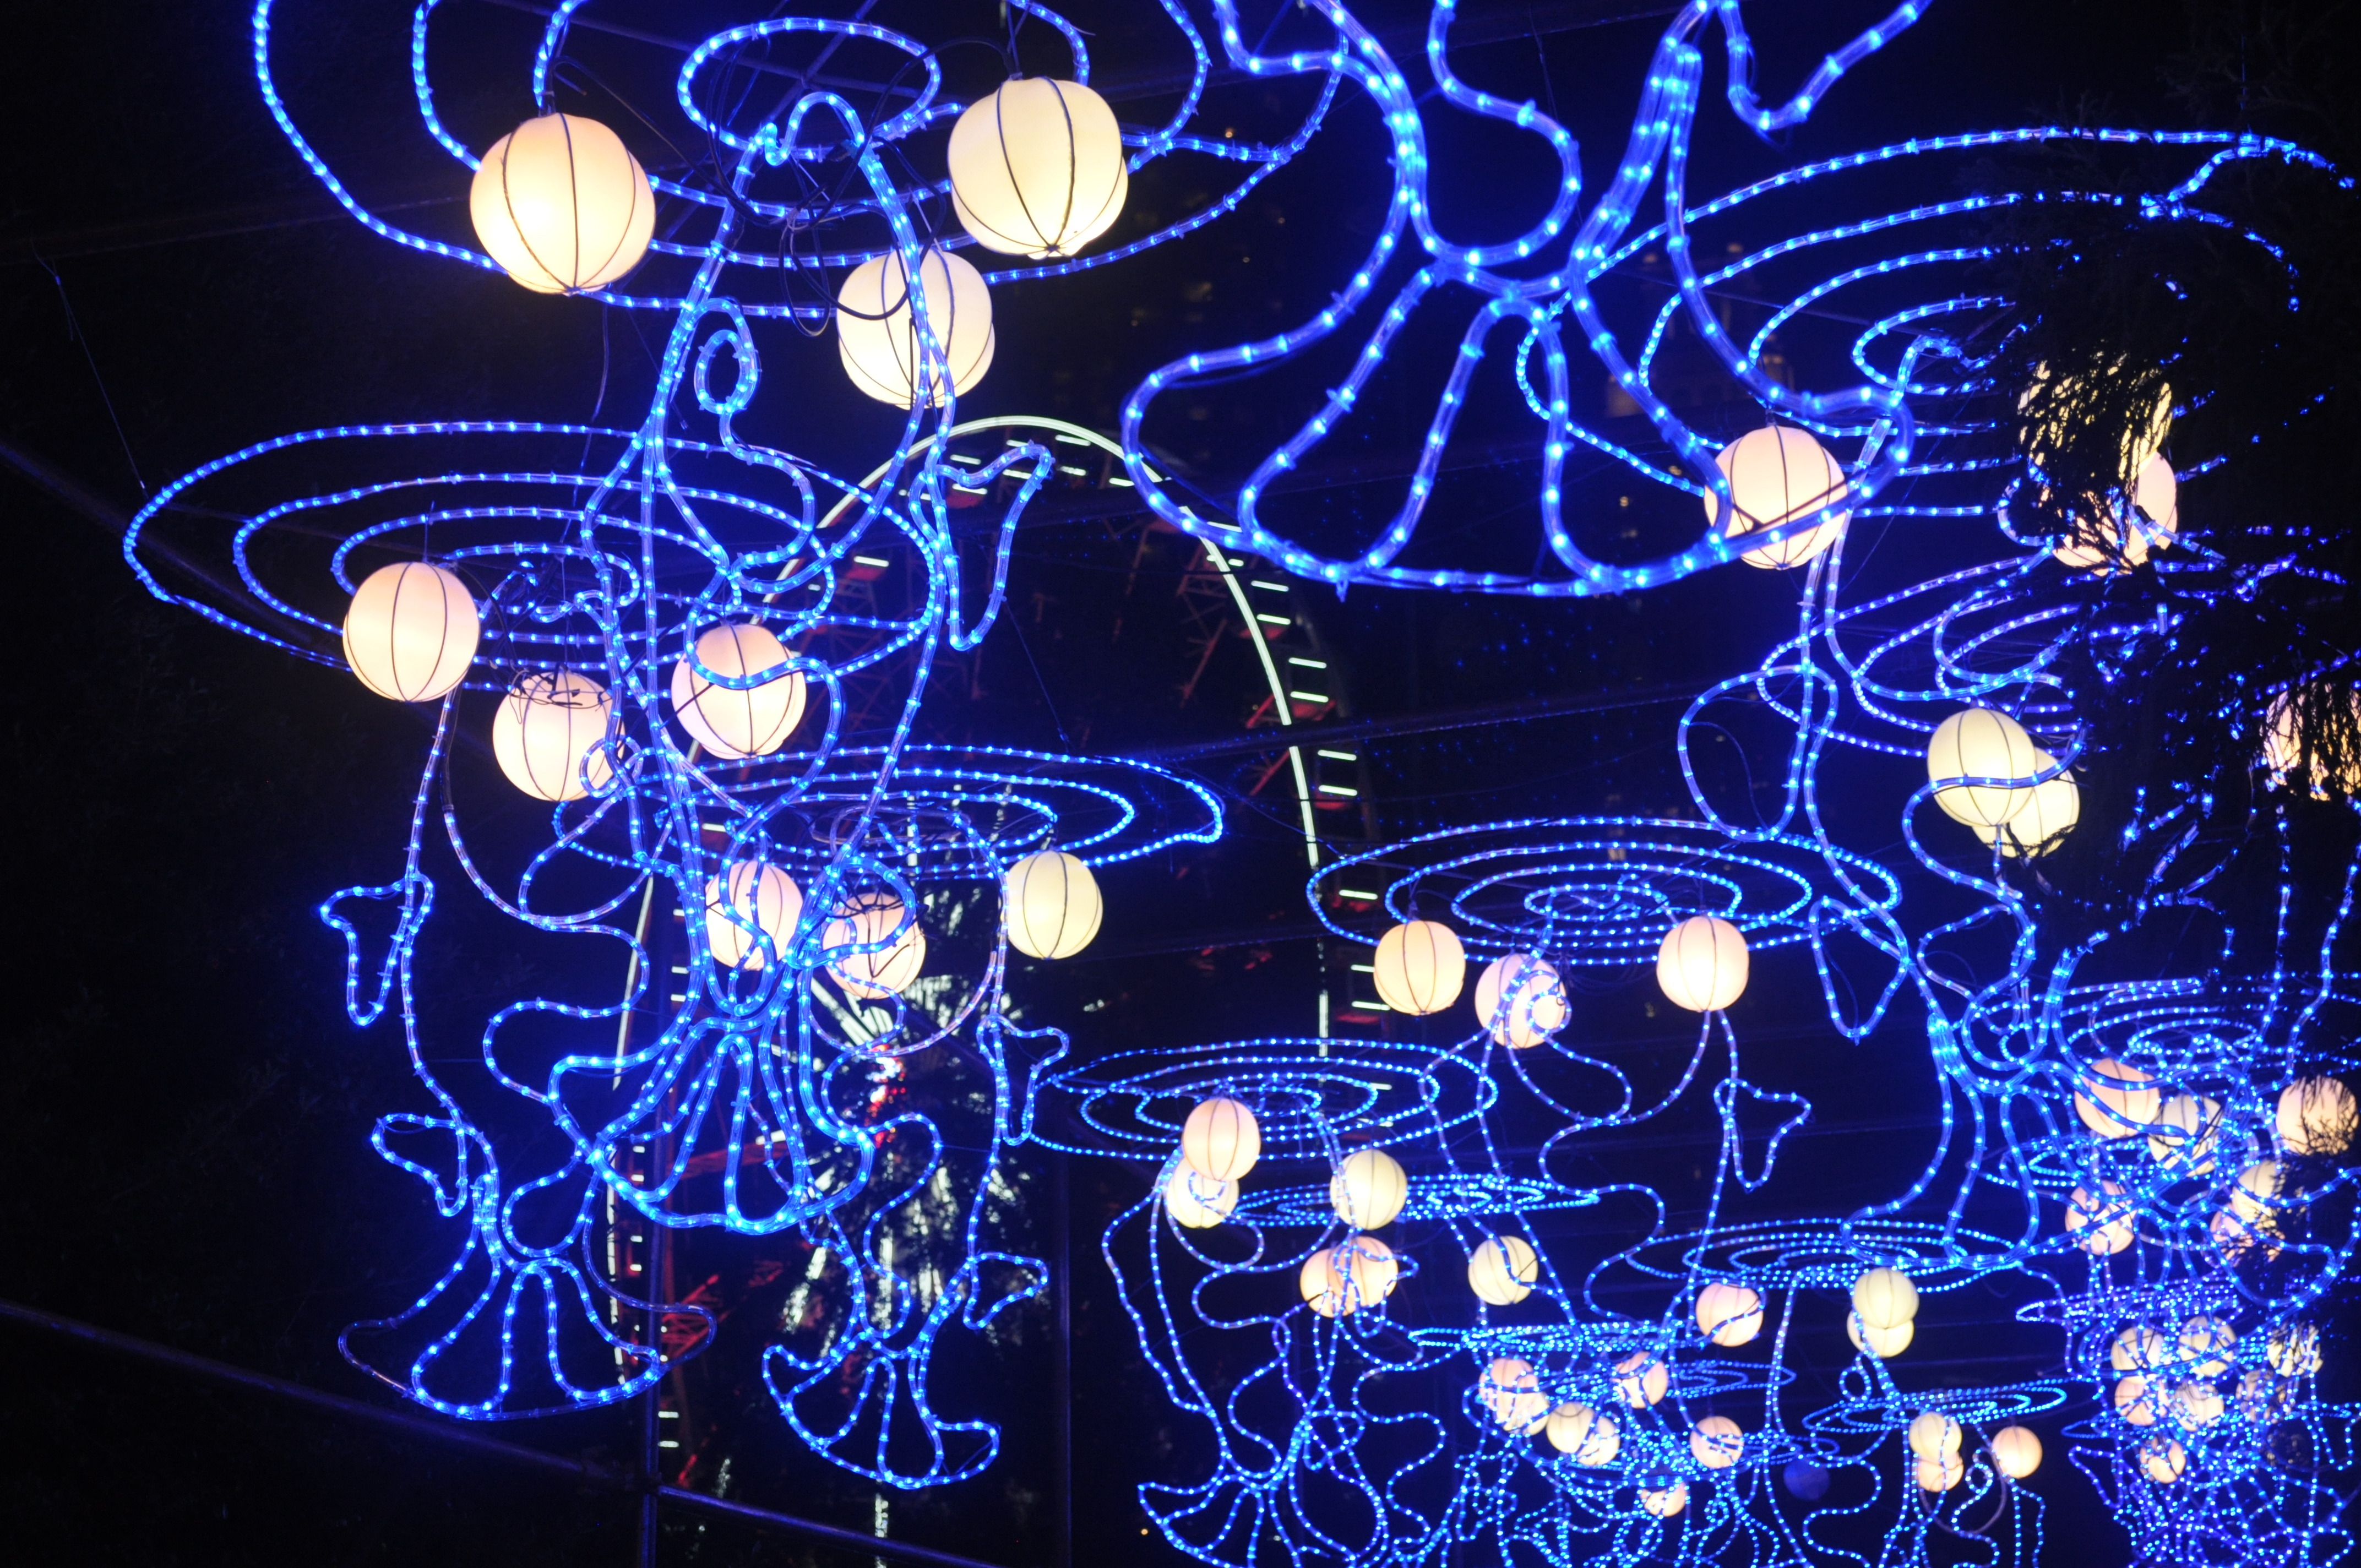 photos downtown atlanta lights up with chinese lantern festival